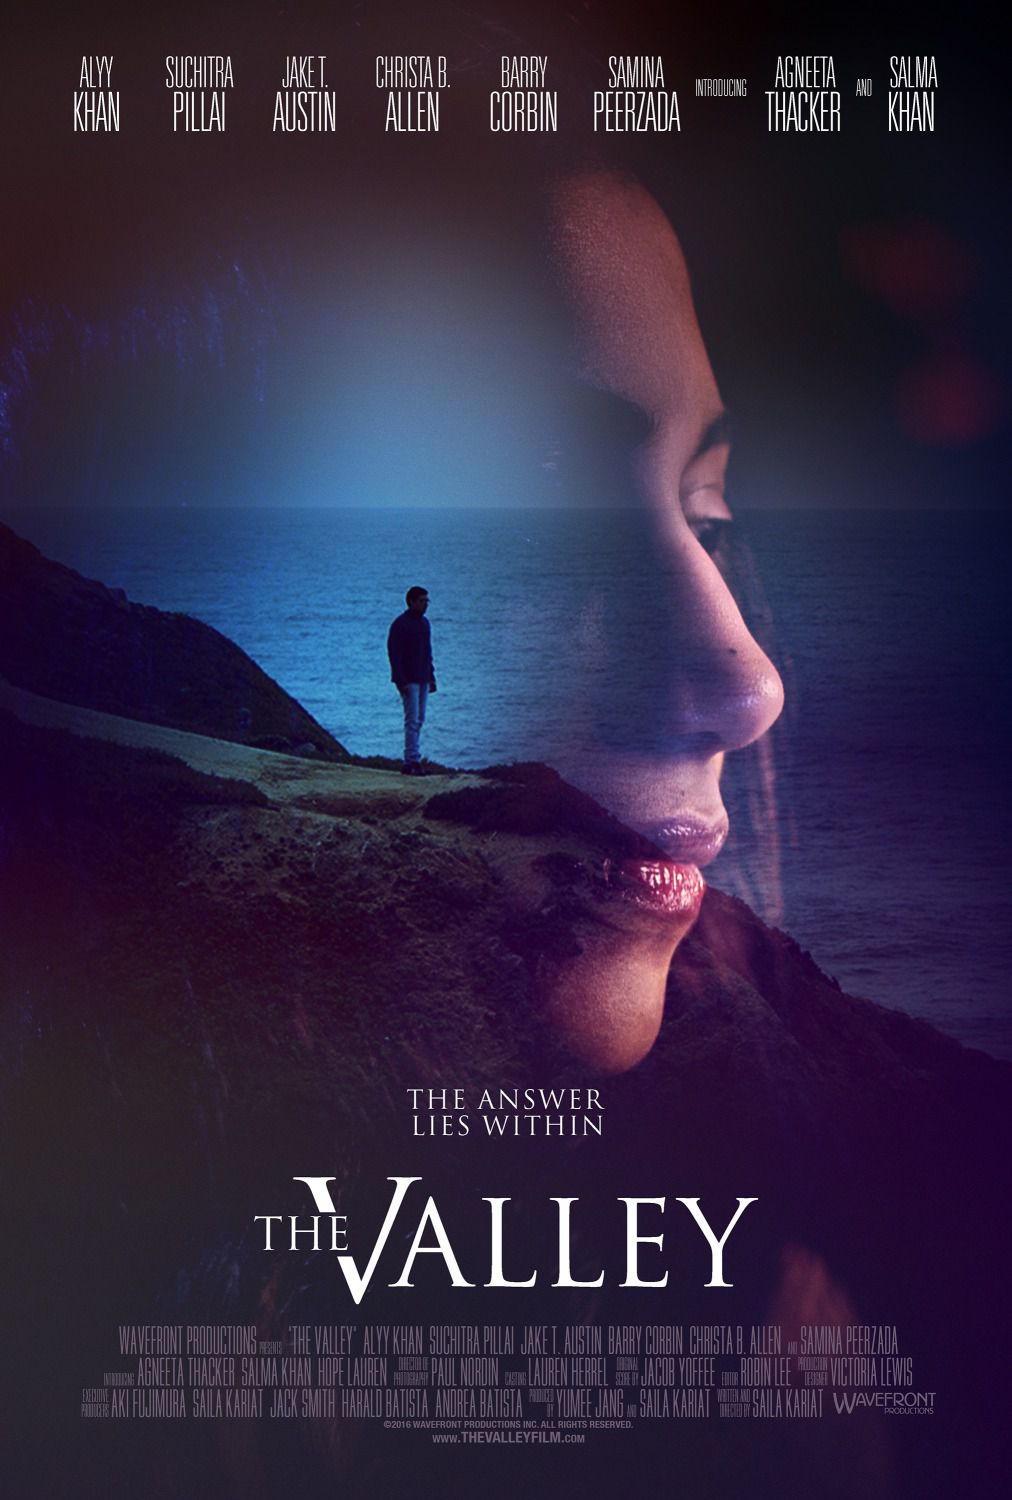 The Valley - The answer lies within - poster